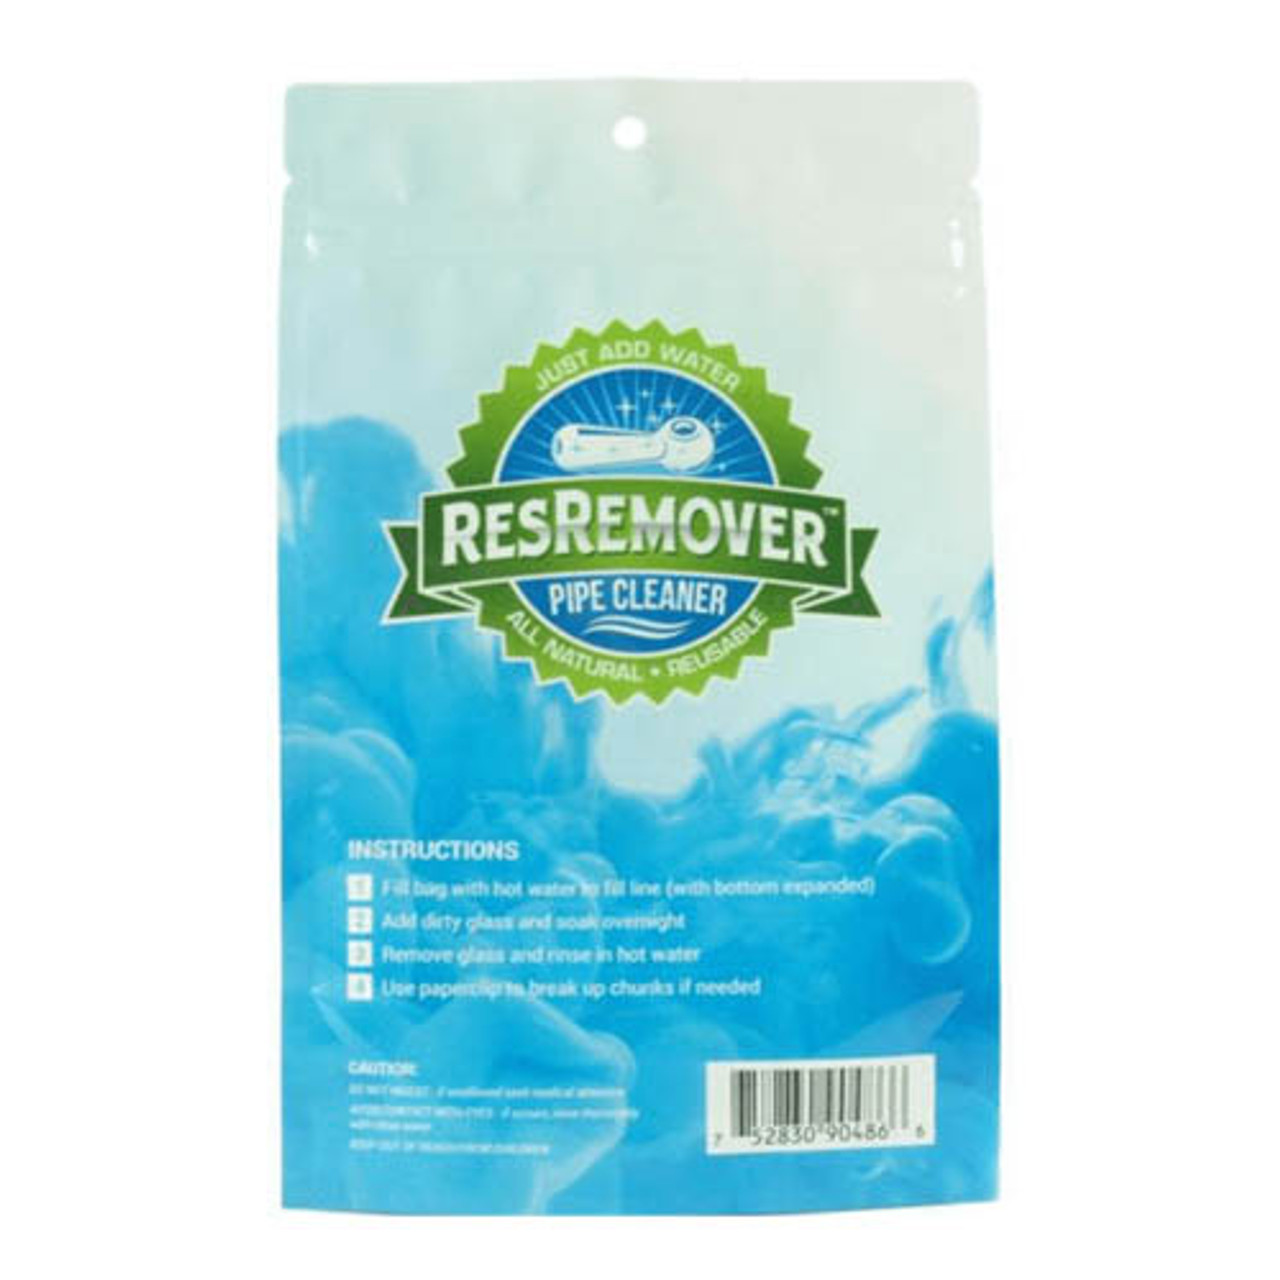 ResRemover Pipe Cleaner .5oz Pouch - Just Add Water (Display of 25)